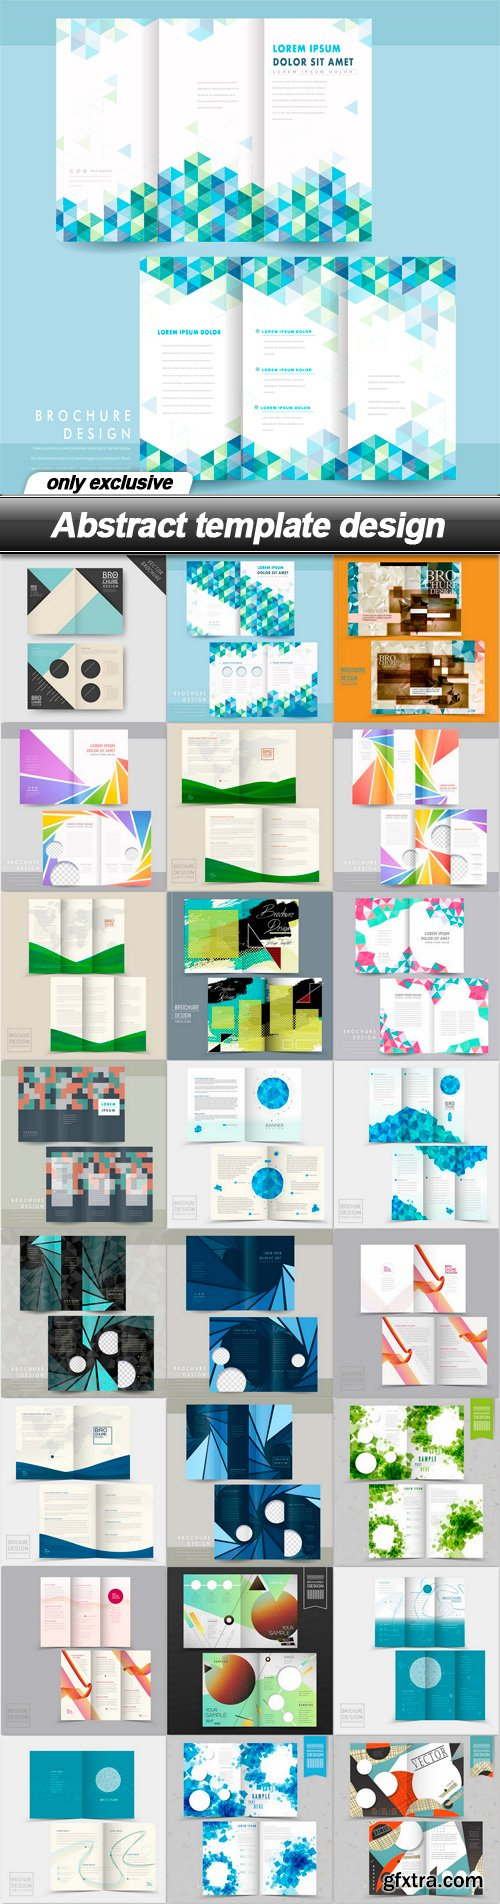 Abstract template design - 25 EPS